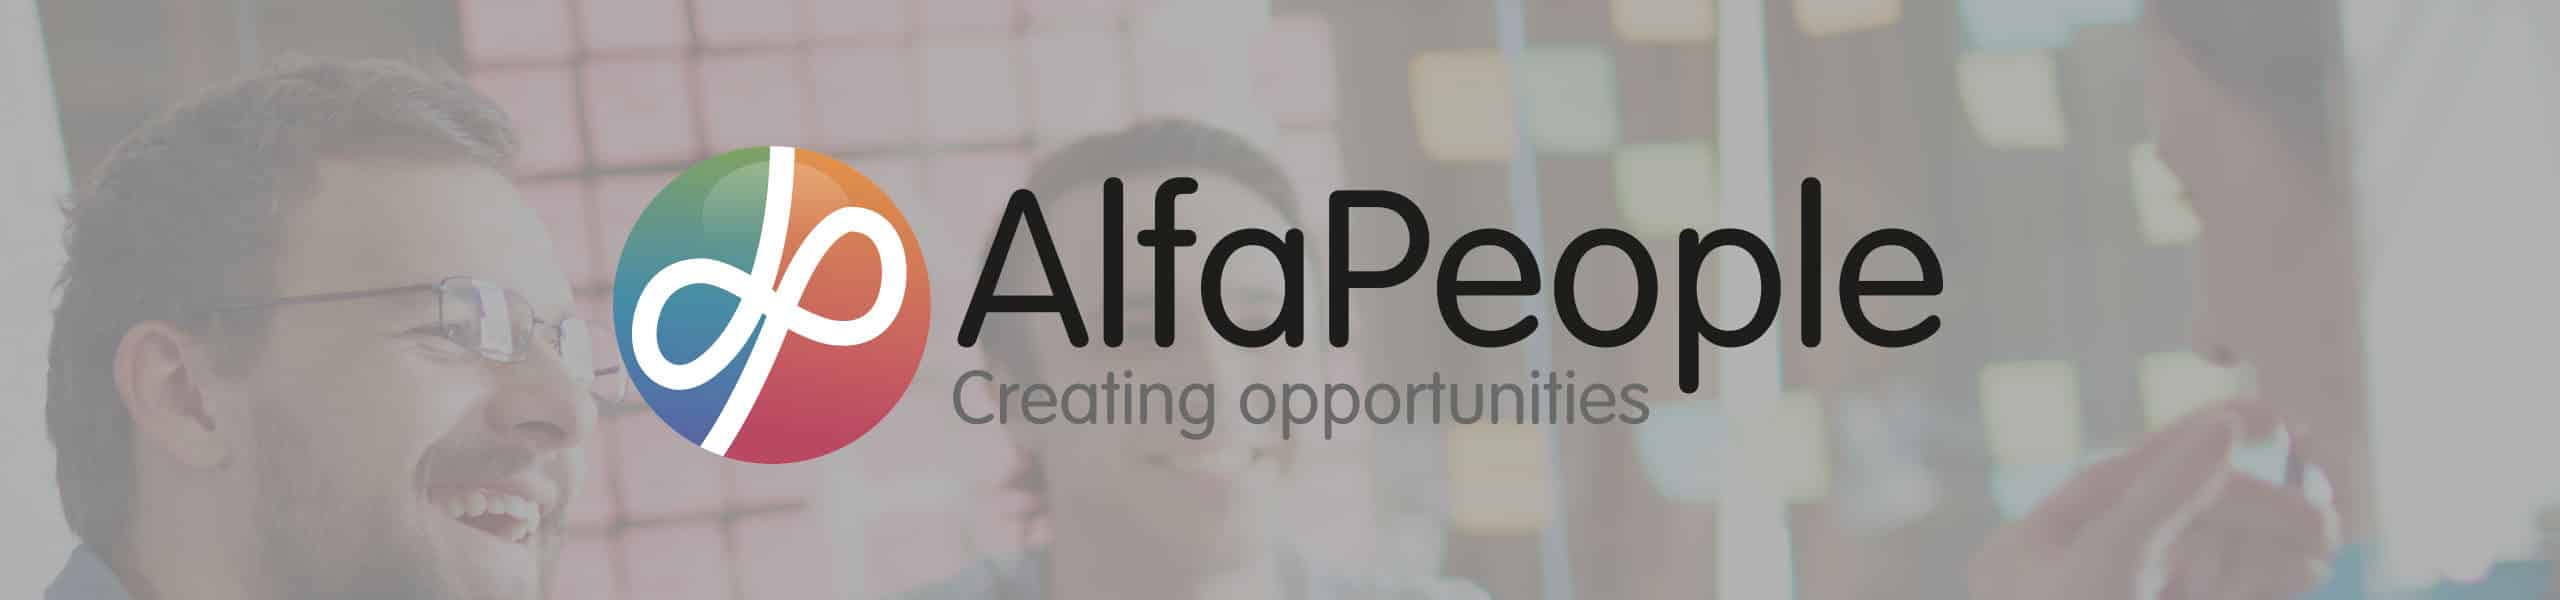 AlfaPeople graphic